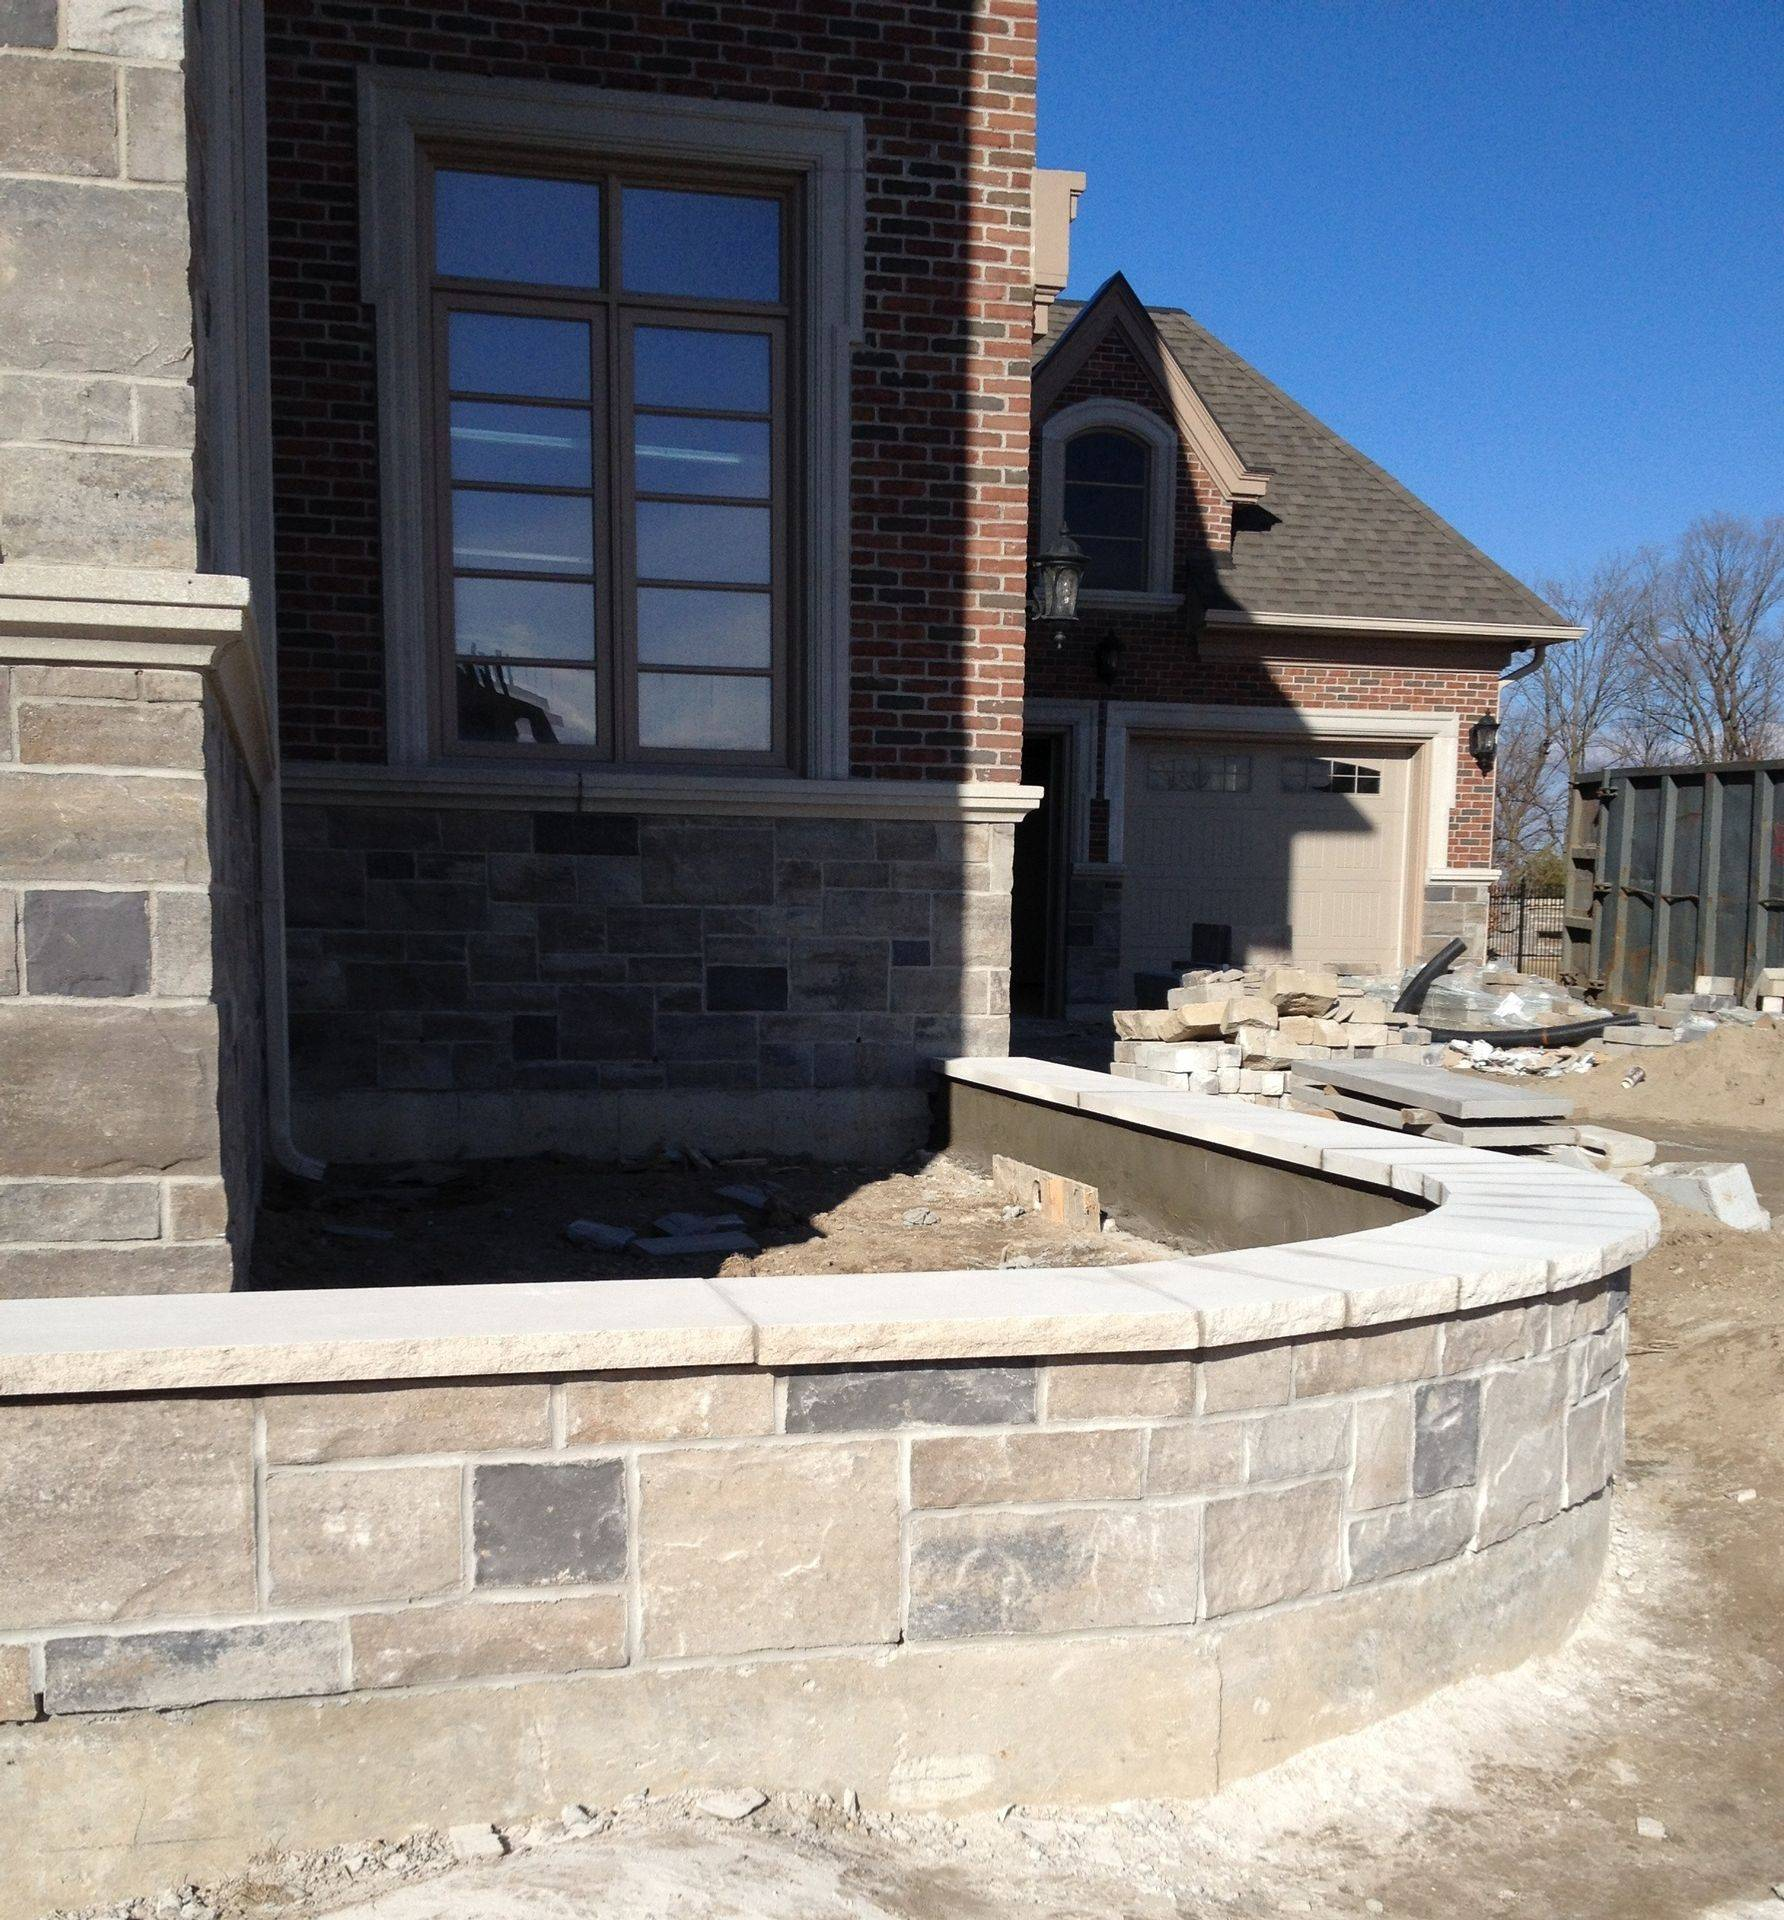 Retaining wall for landscape ideas